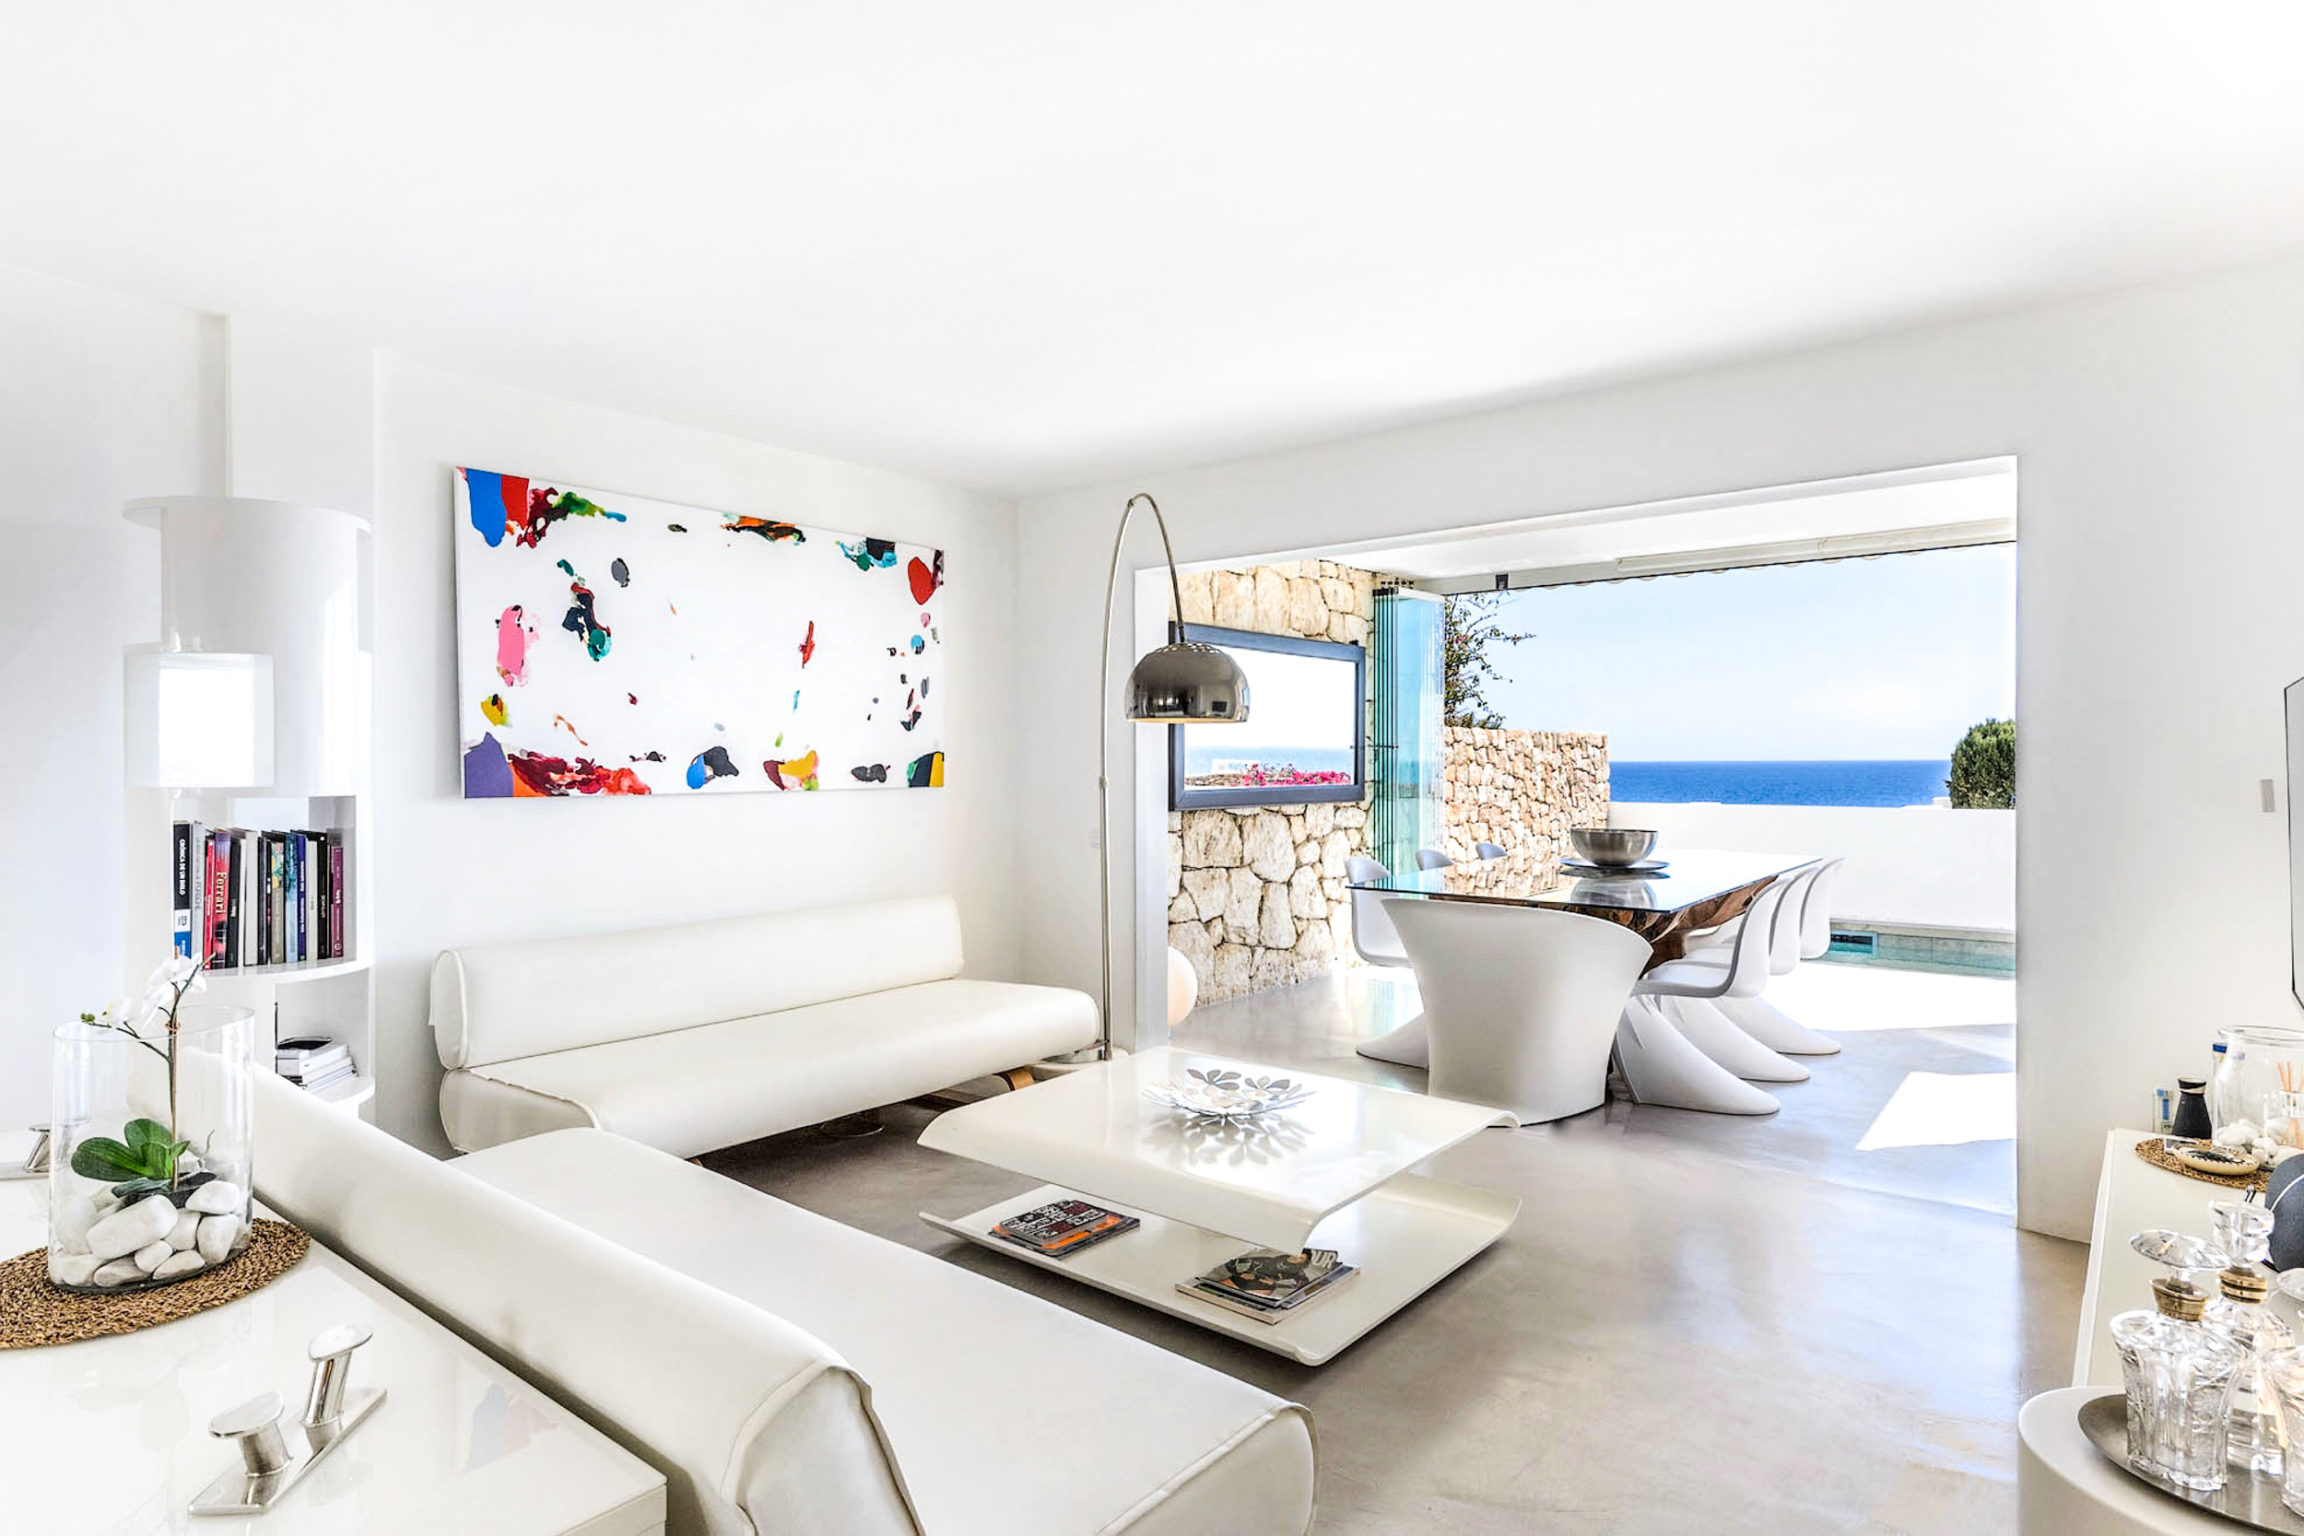 https://www.white-ibiza.com/wp-content/uploads/2020/03/white-ibiza-property-WI181-2020-08-2304x1536.jpg